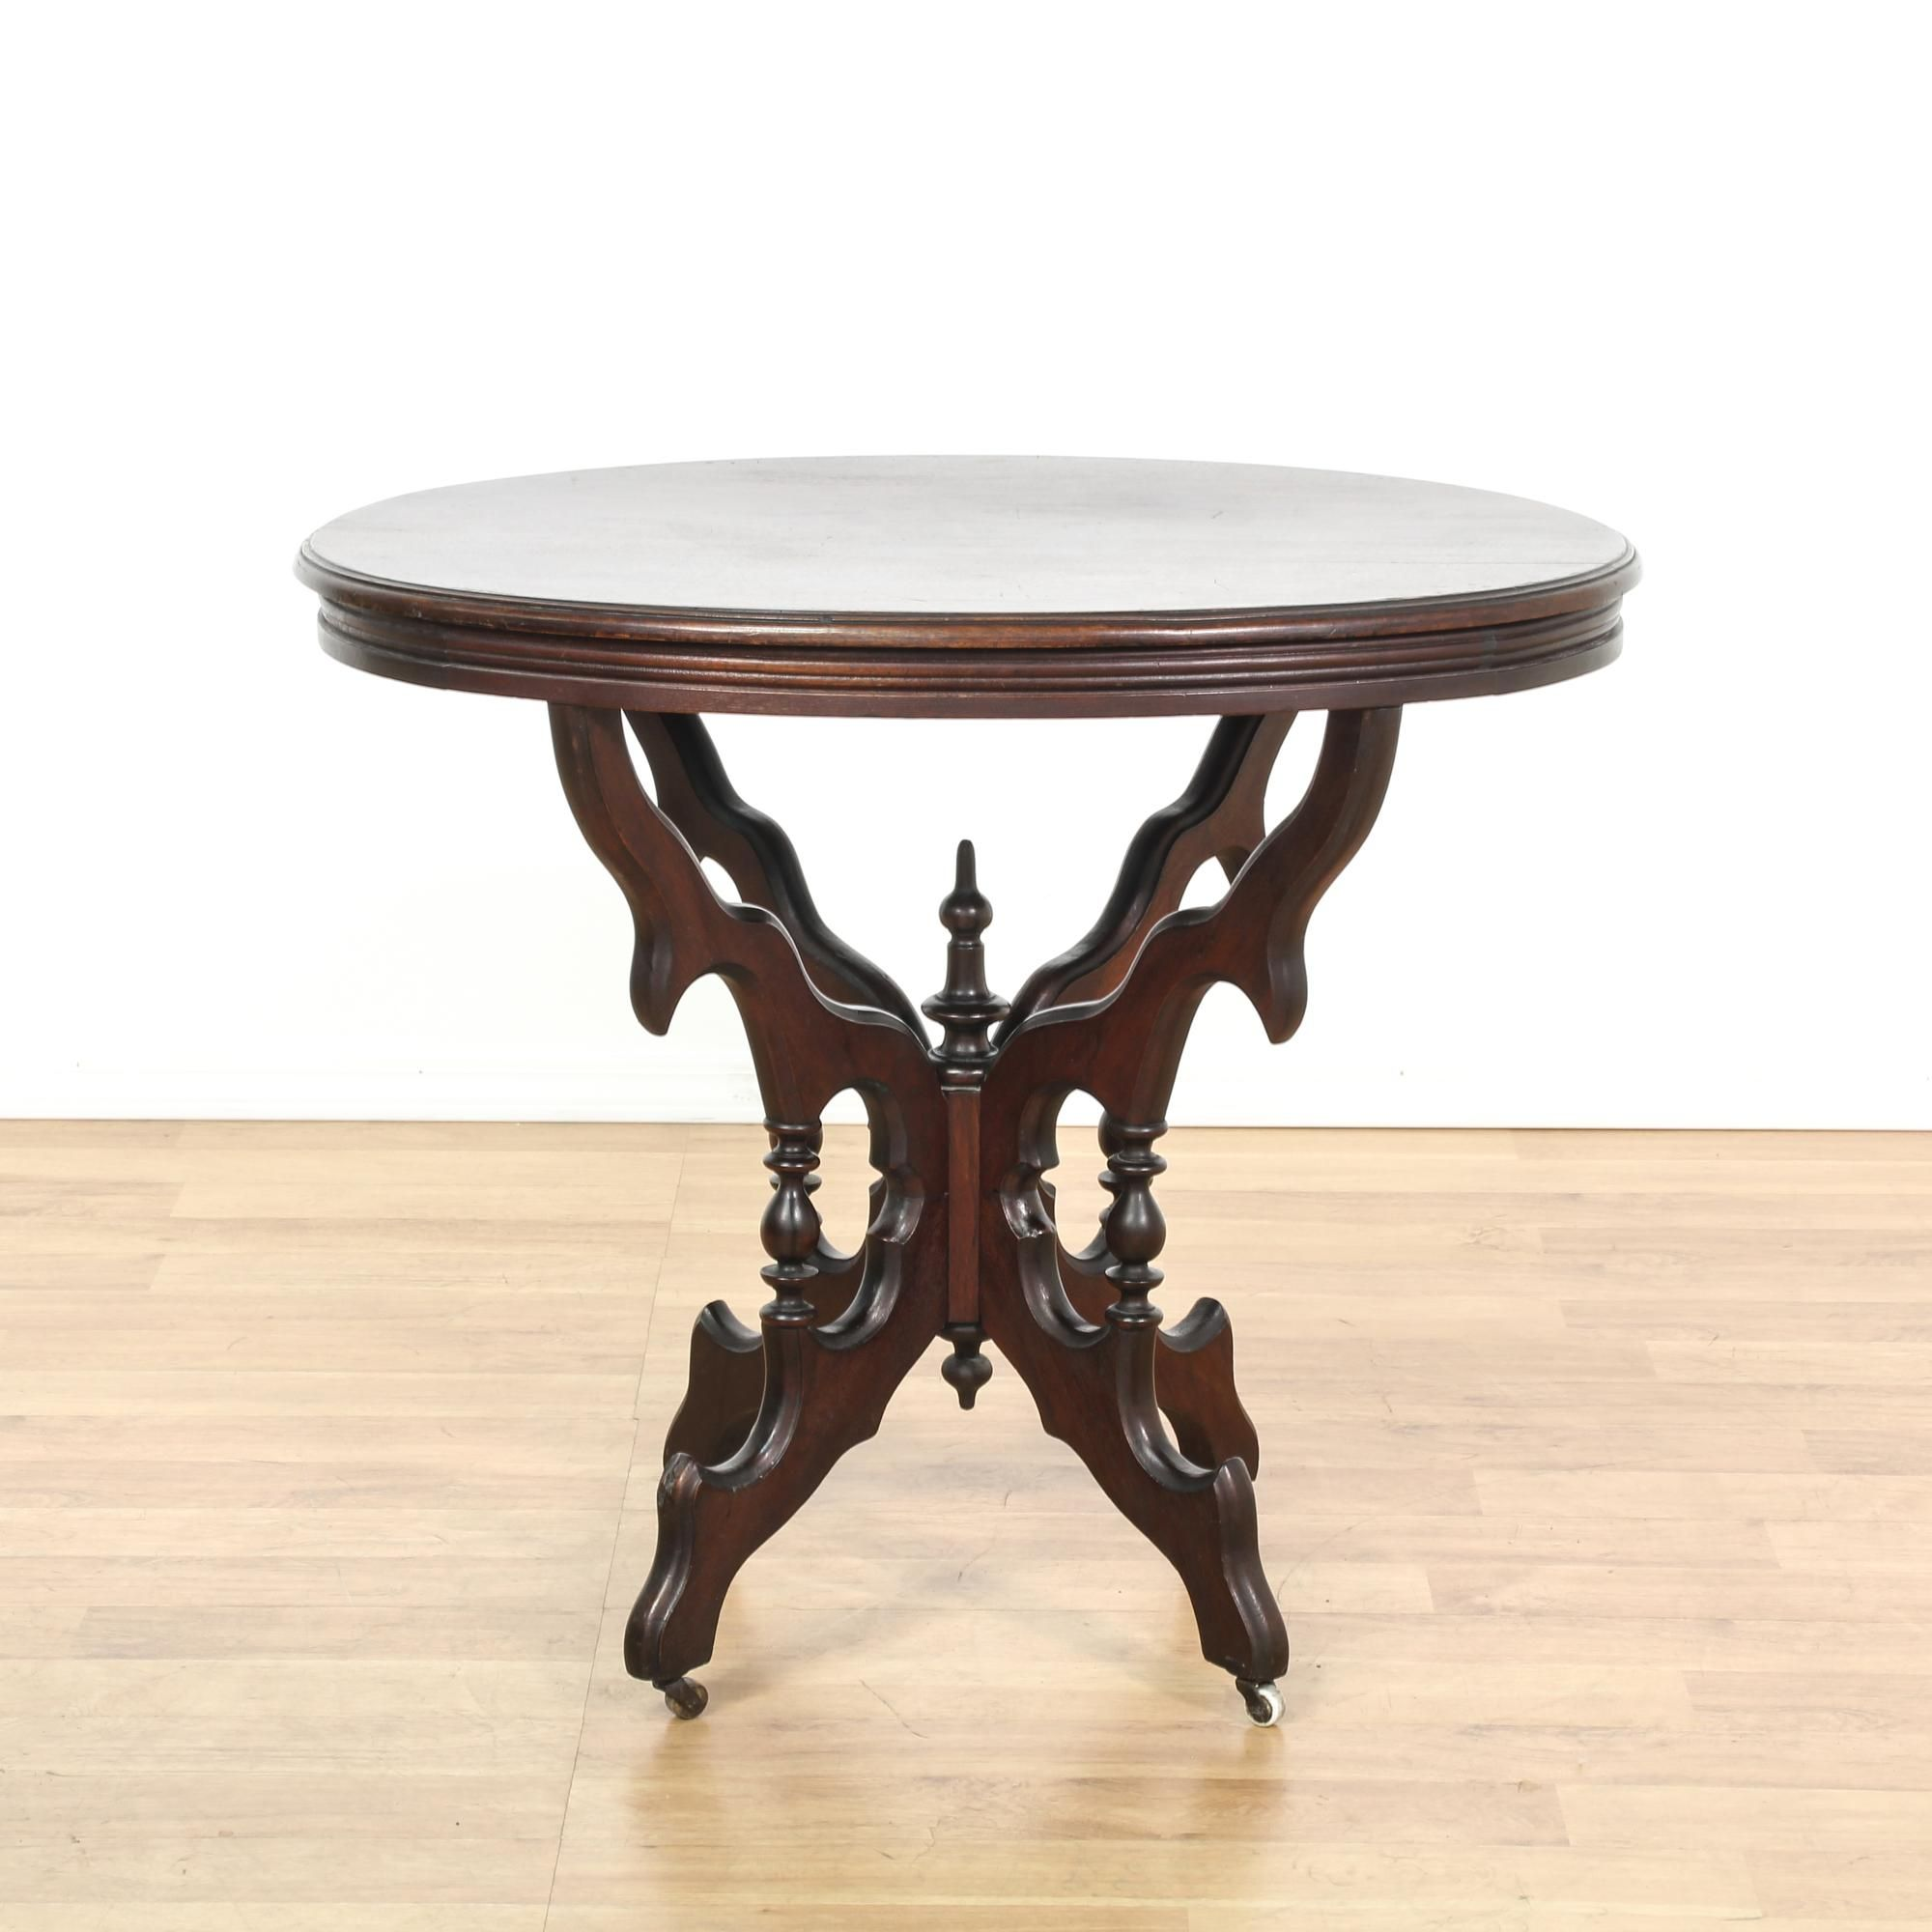 This coffee table is featured in a solid wood with a glossy mahogany